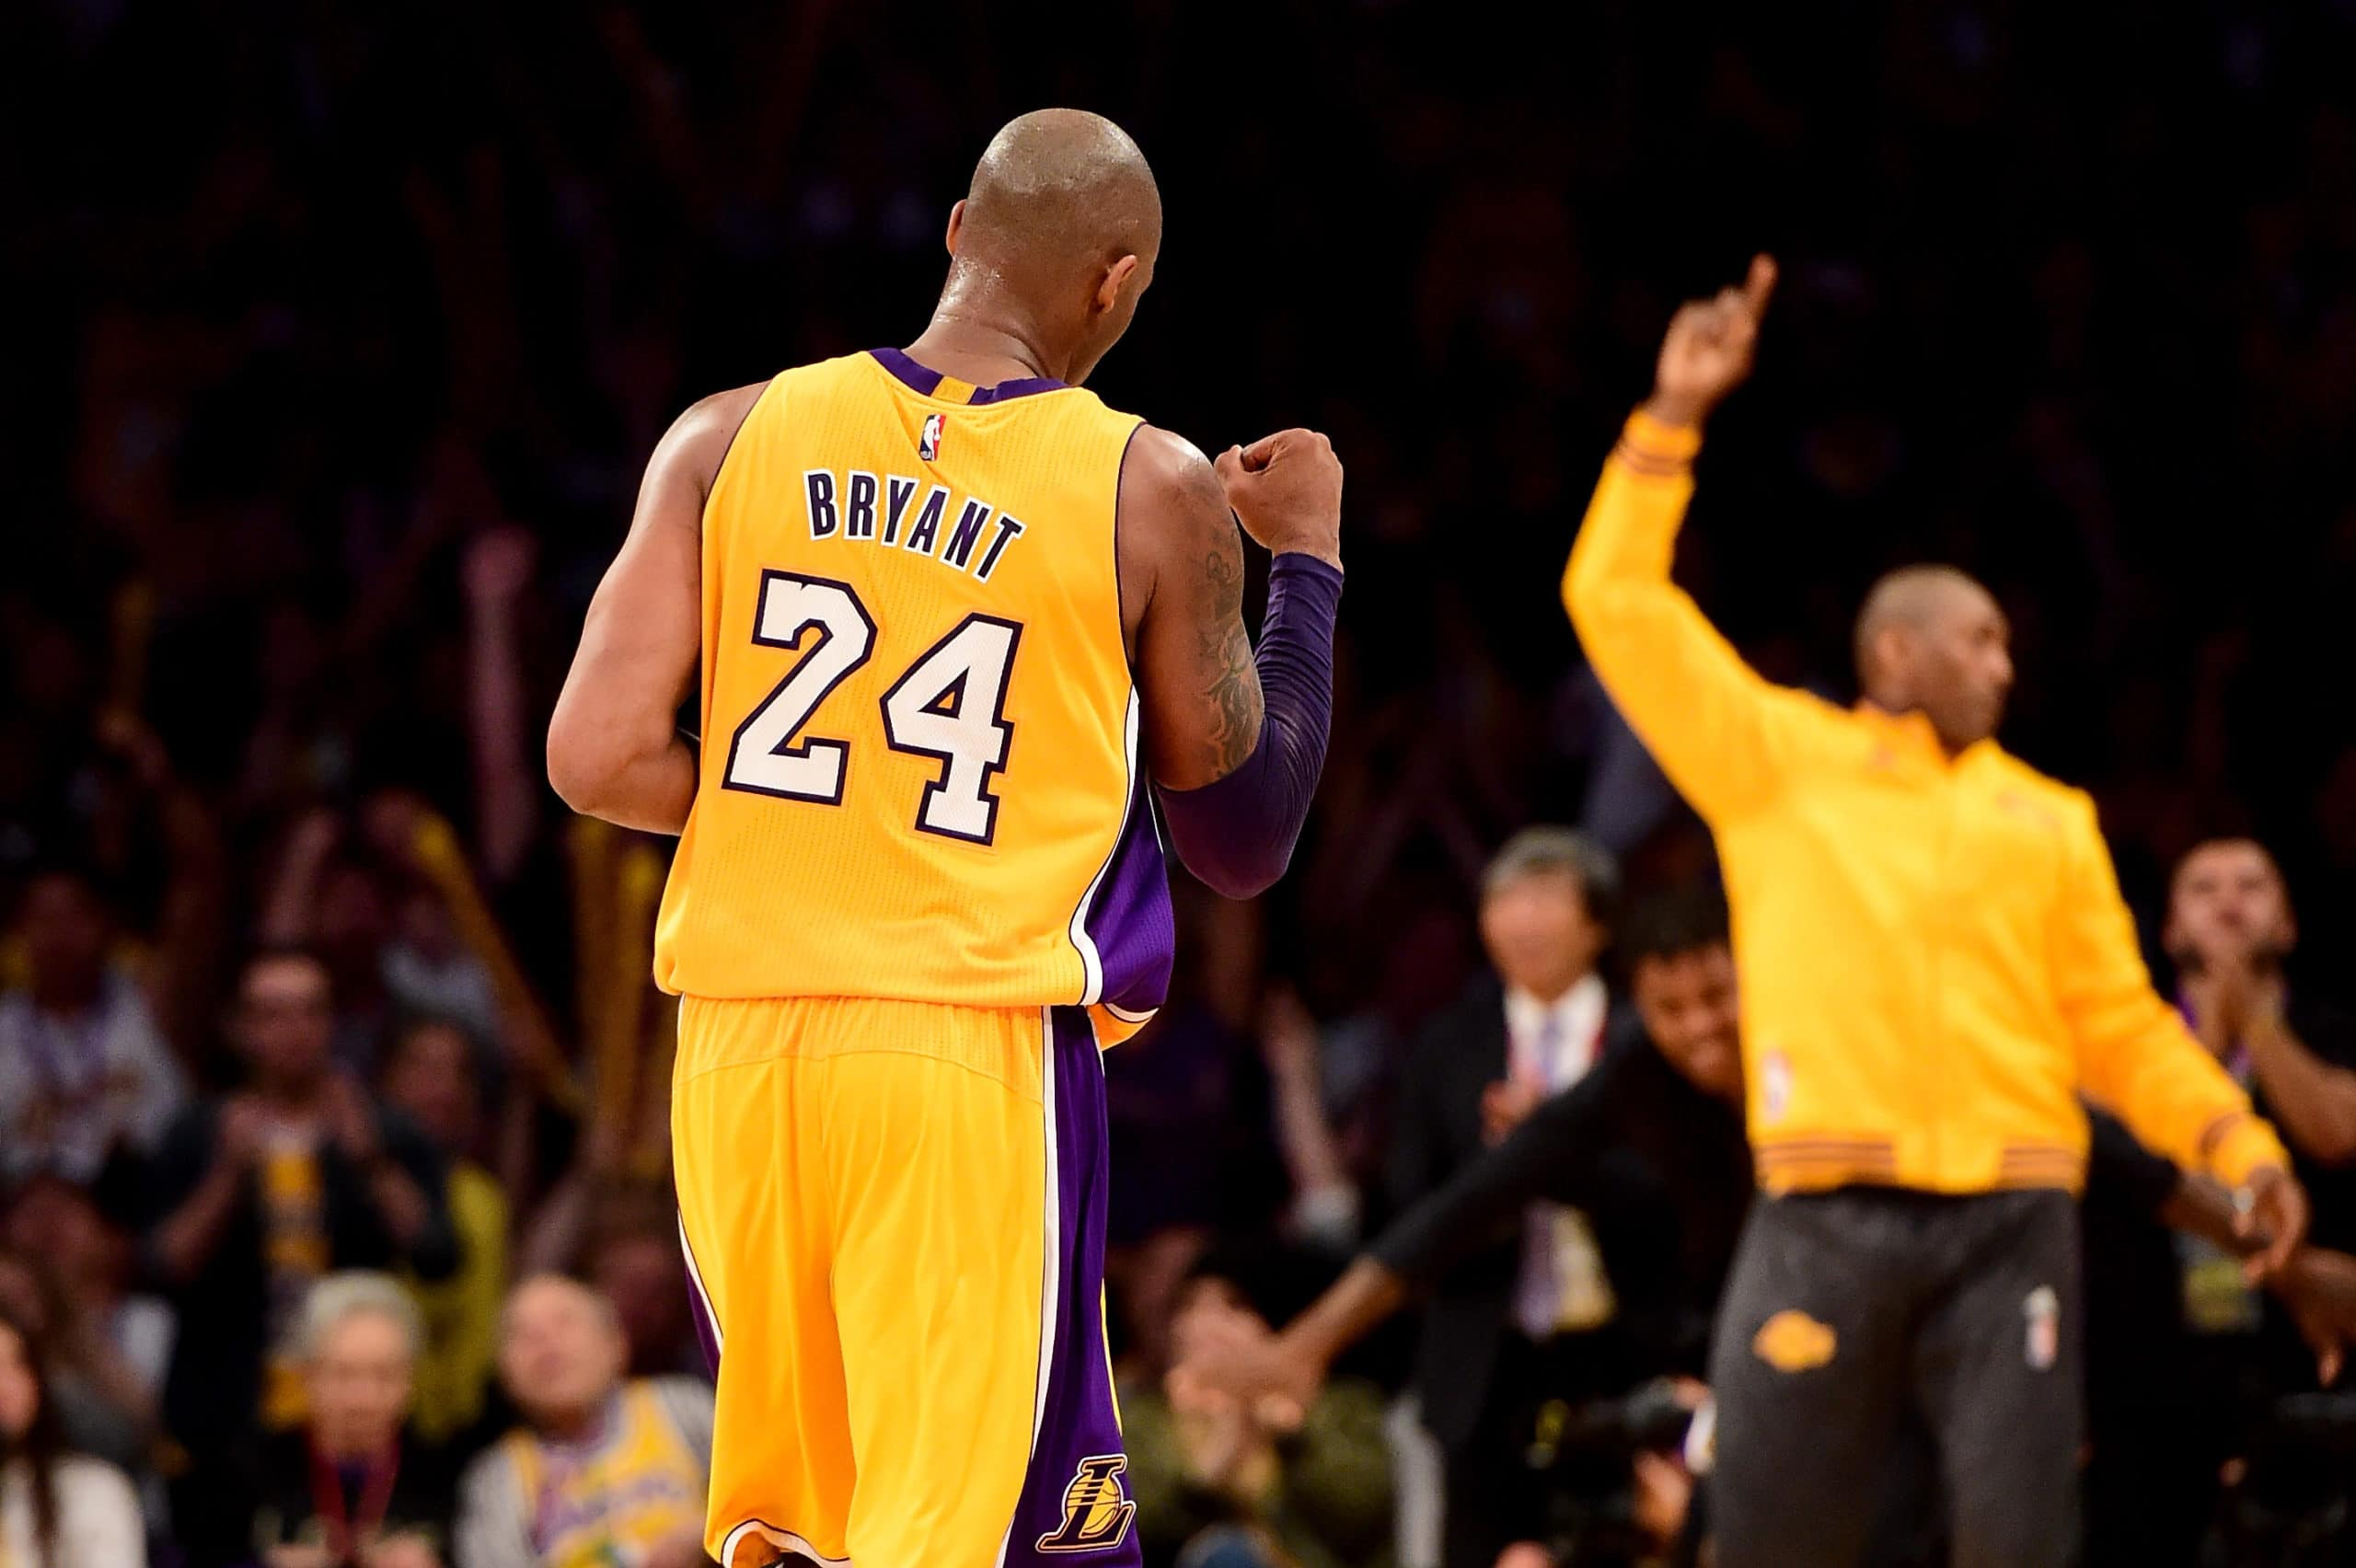 kobe-bryant-hall-of-fame-ceremony-date-time-and-see-on-tv-and-online.jpg